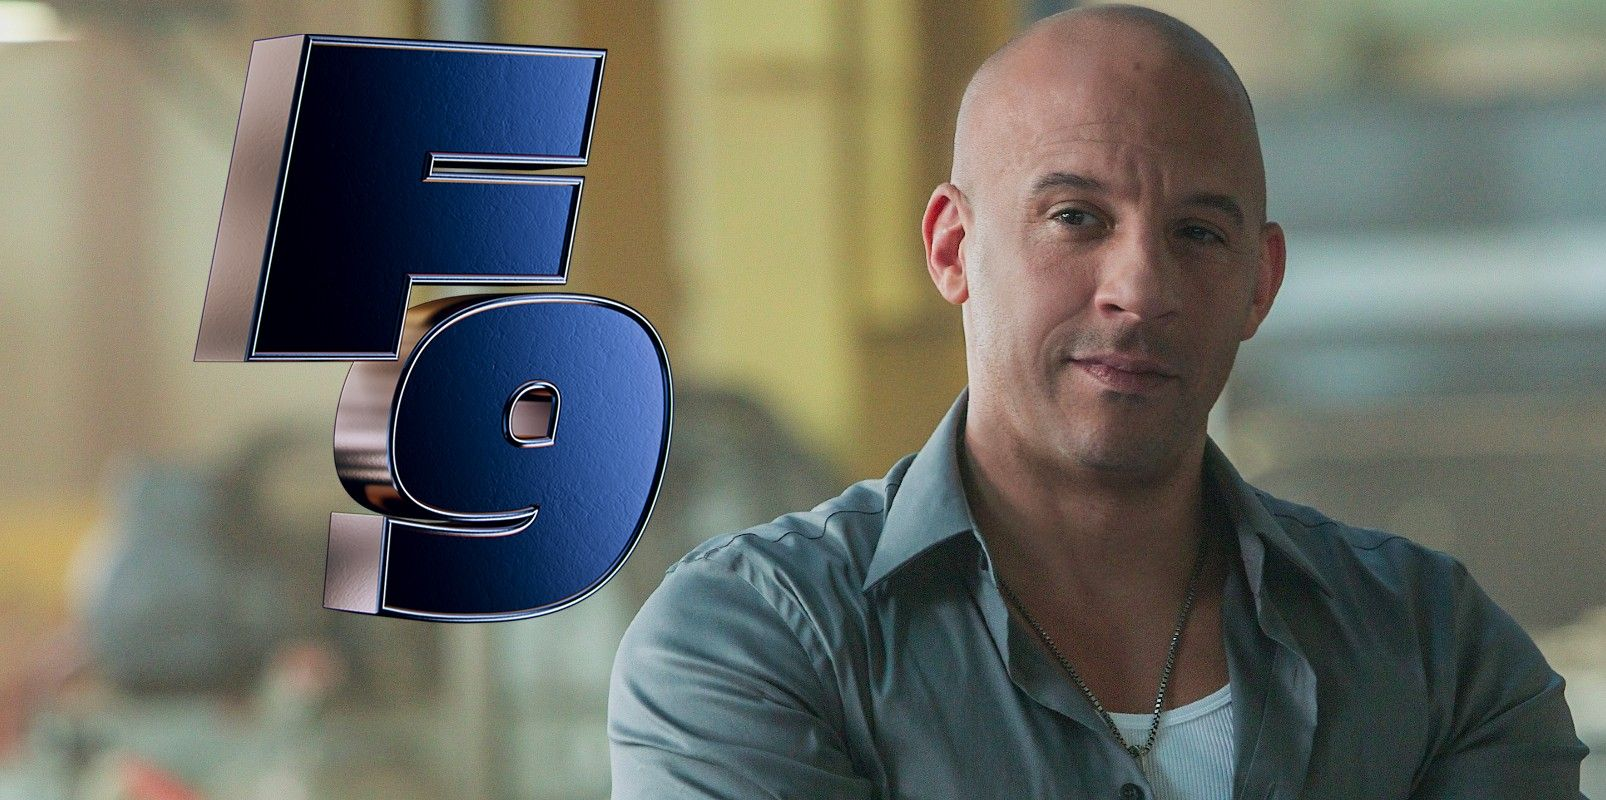 fast and furious 9 - photo #14